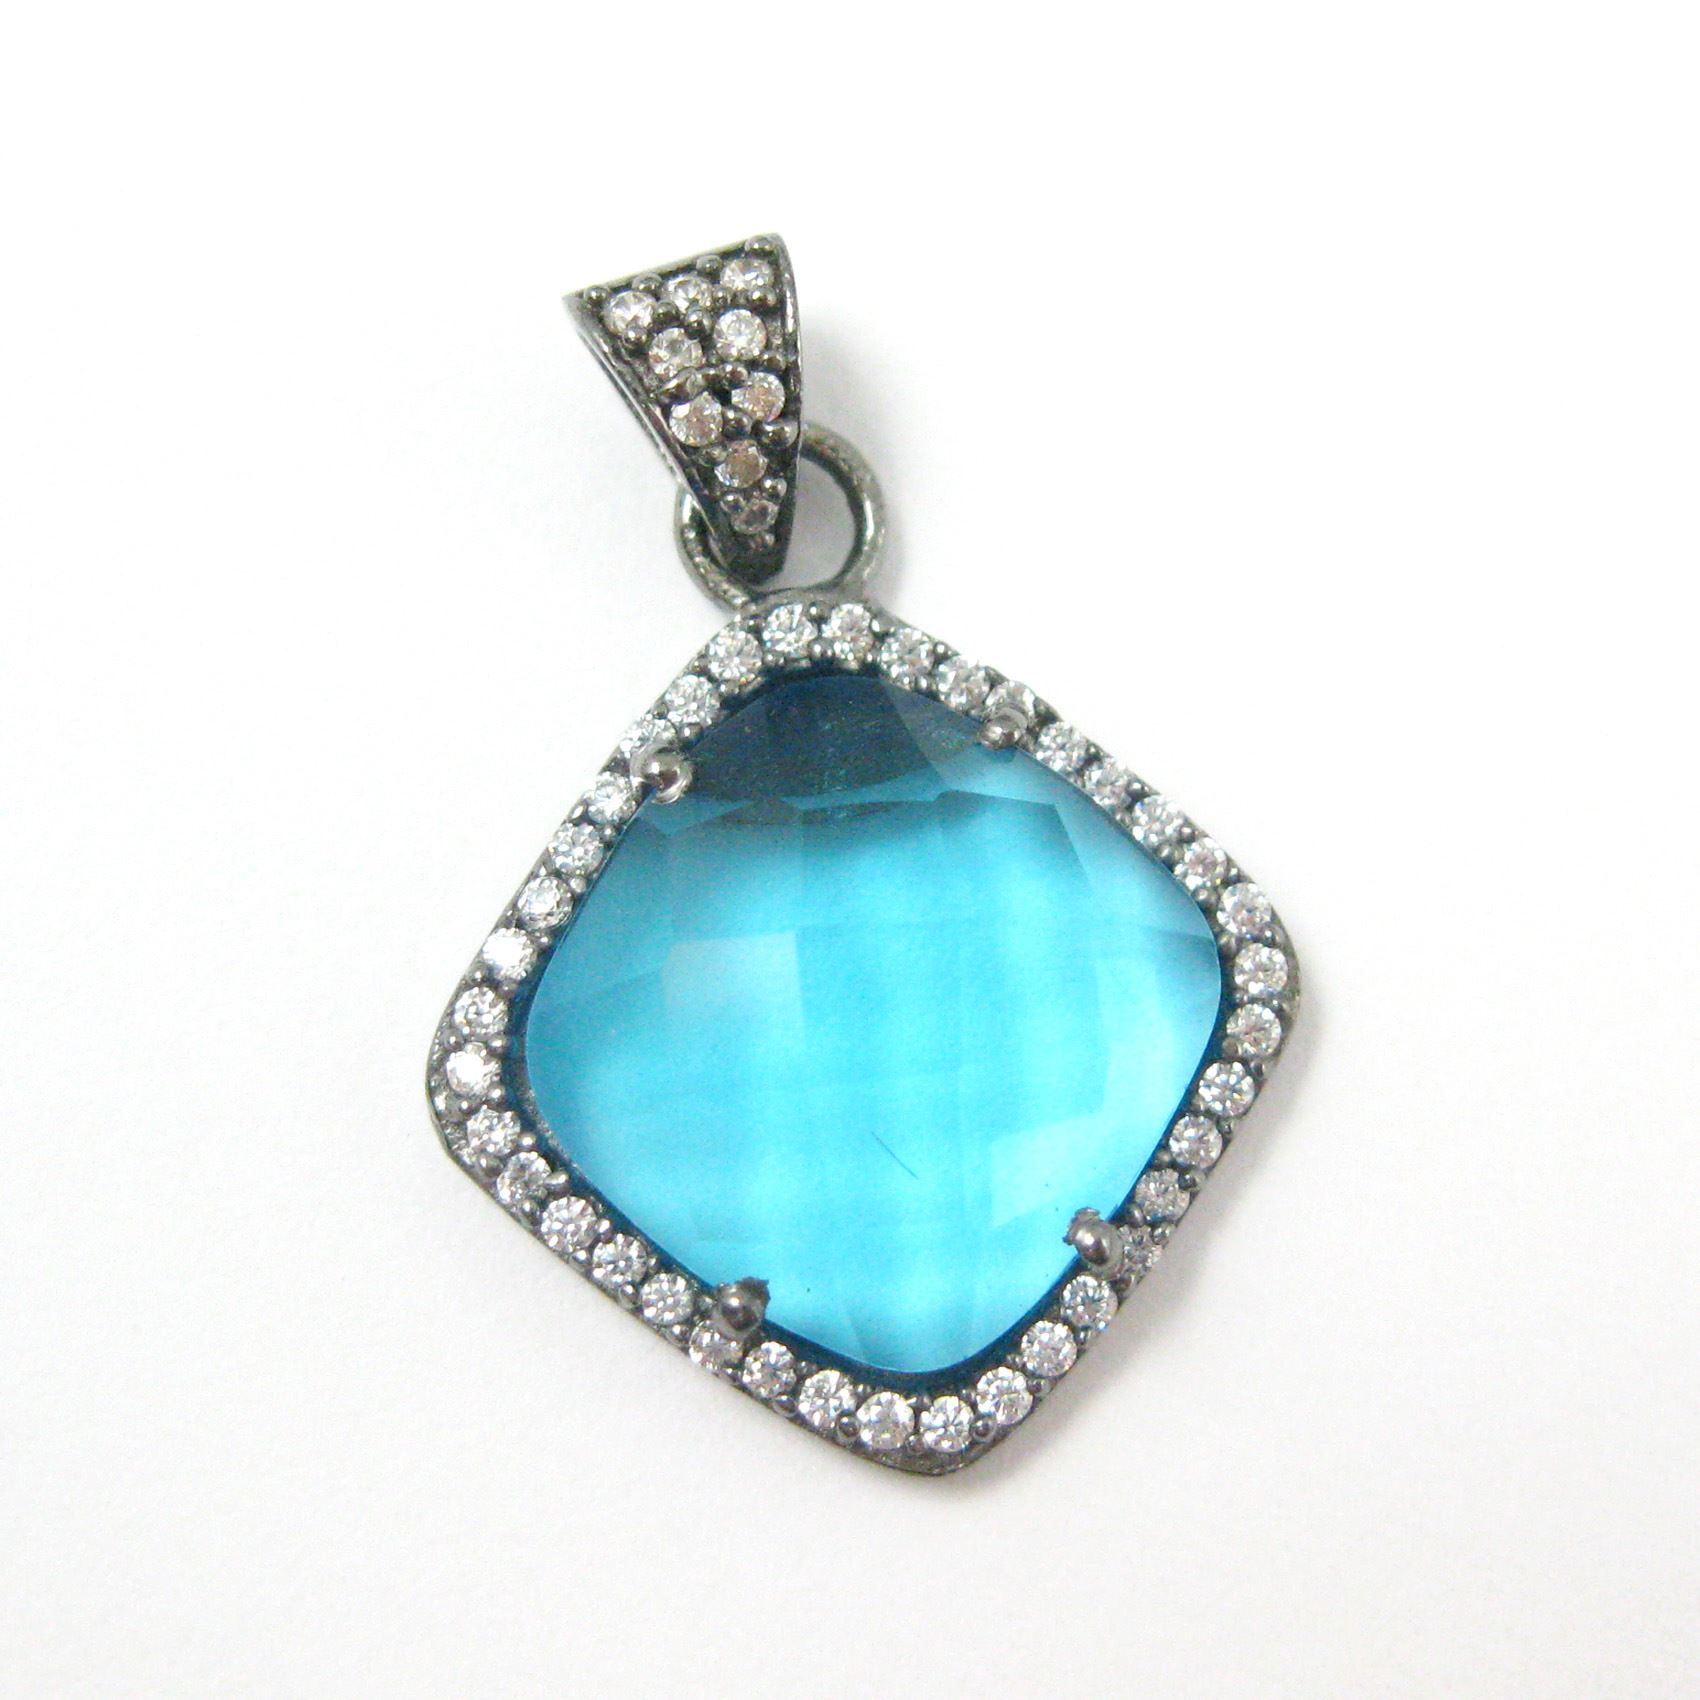 Oxidized Sterling Silver Pave Bezel Gemstone Pendant - Cubic Zirconia Pave Setting -  Diamond Shape Faceted Stone-Blue Topaz Quartz- 17mm